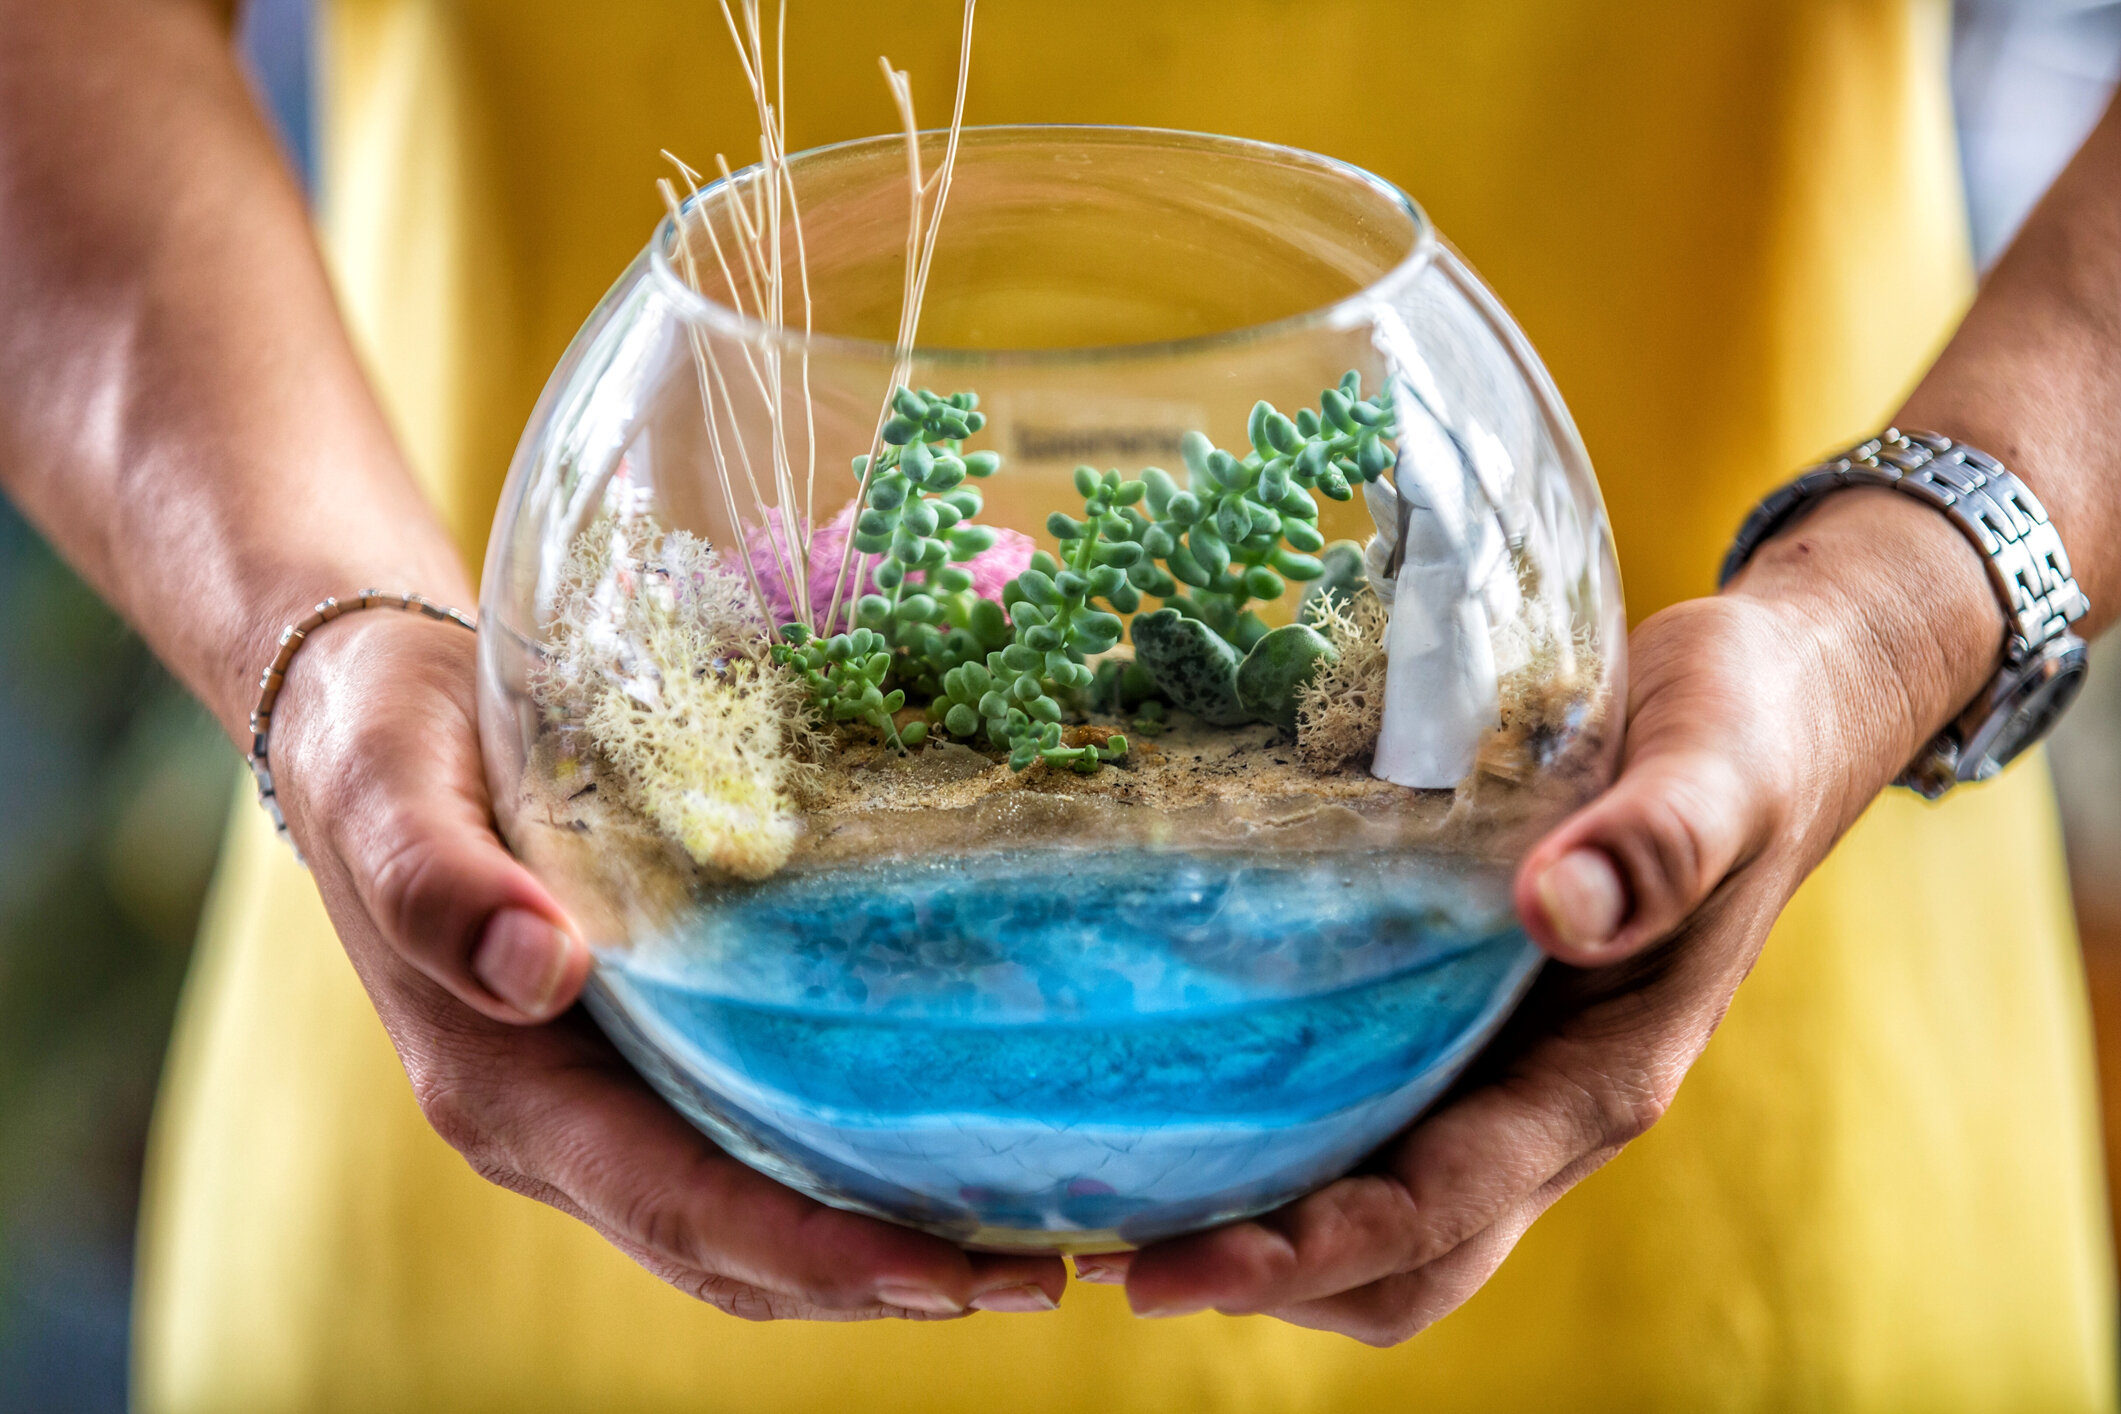 Use colorful blue stones or sand to create the illusion of water.